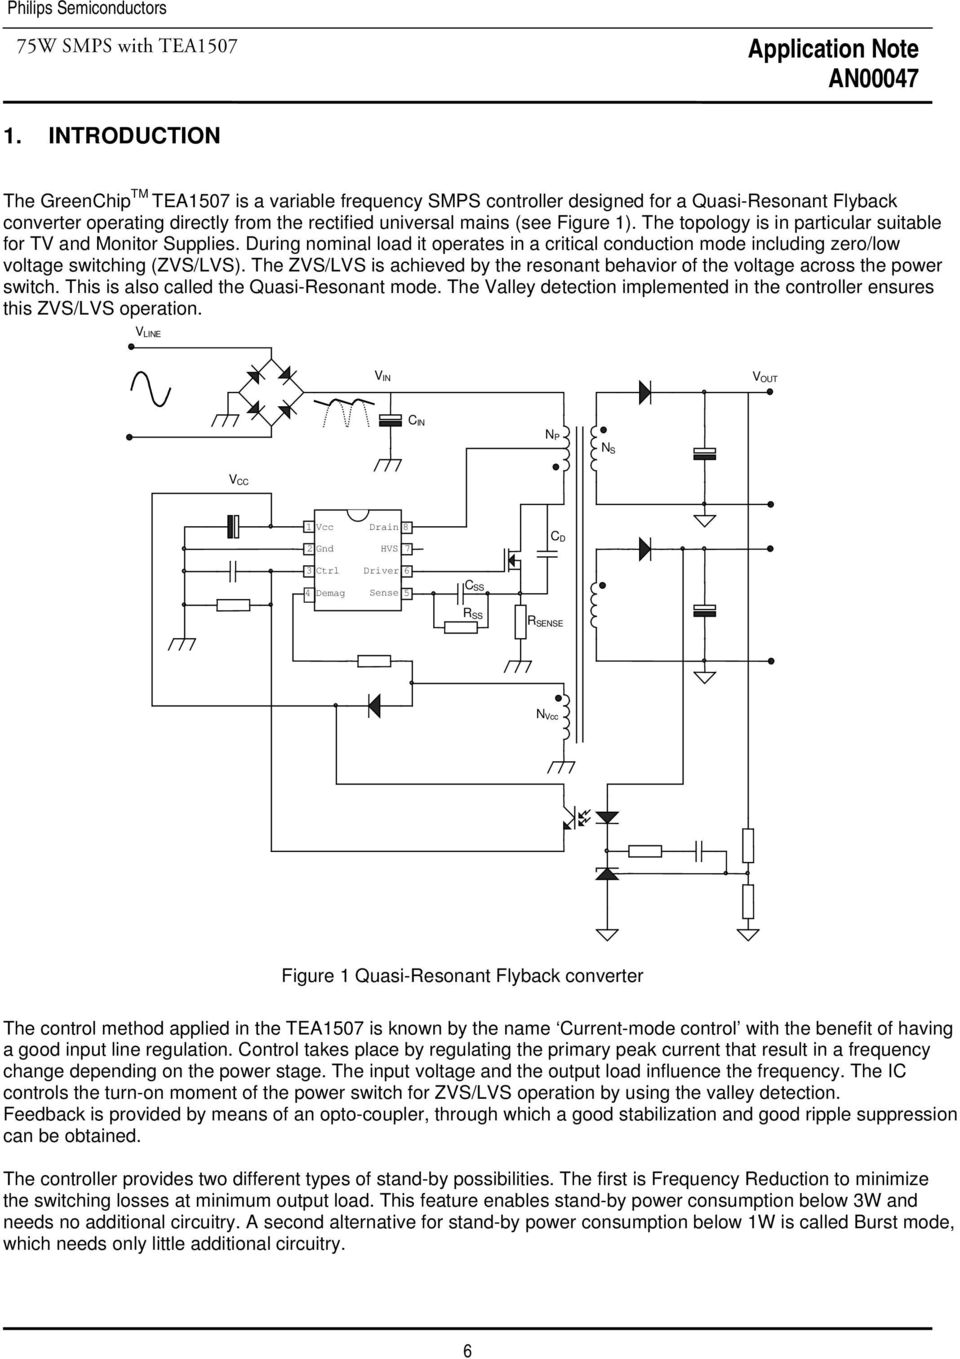 75w Smps With Tea1507 Quasi Resonant Flyback Controller Pdf Converter Zvs Boost Free Final Year The Vs Is Achieved By Behavior Of Voltage Across Power